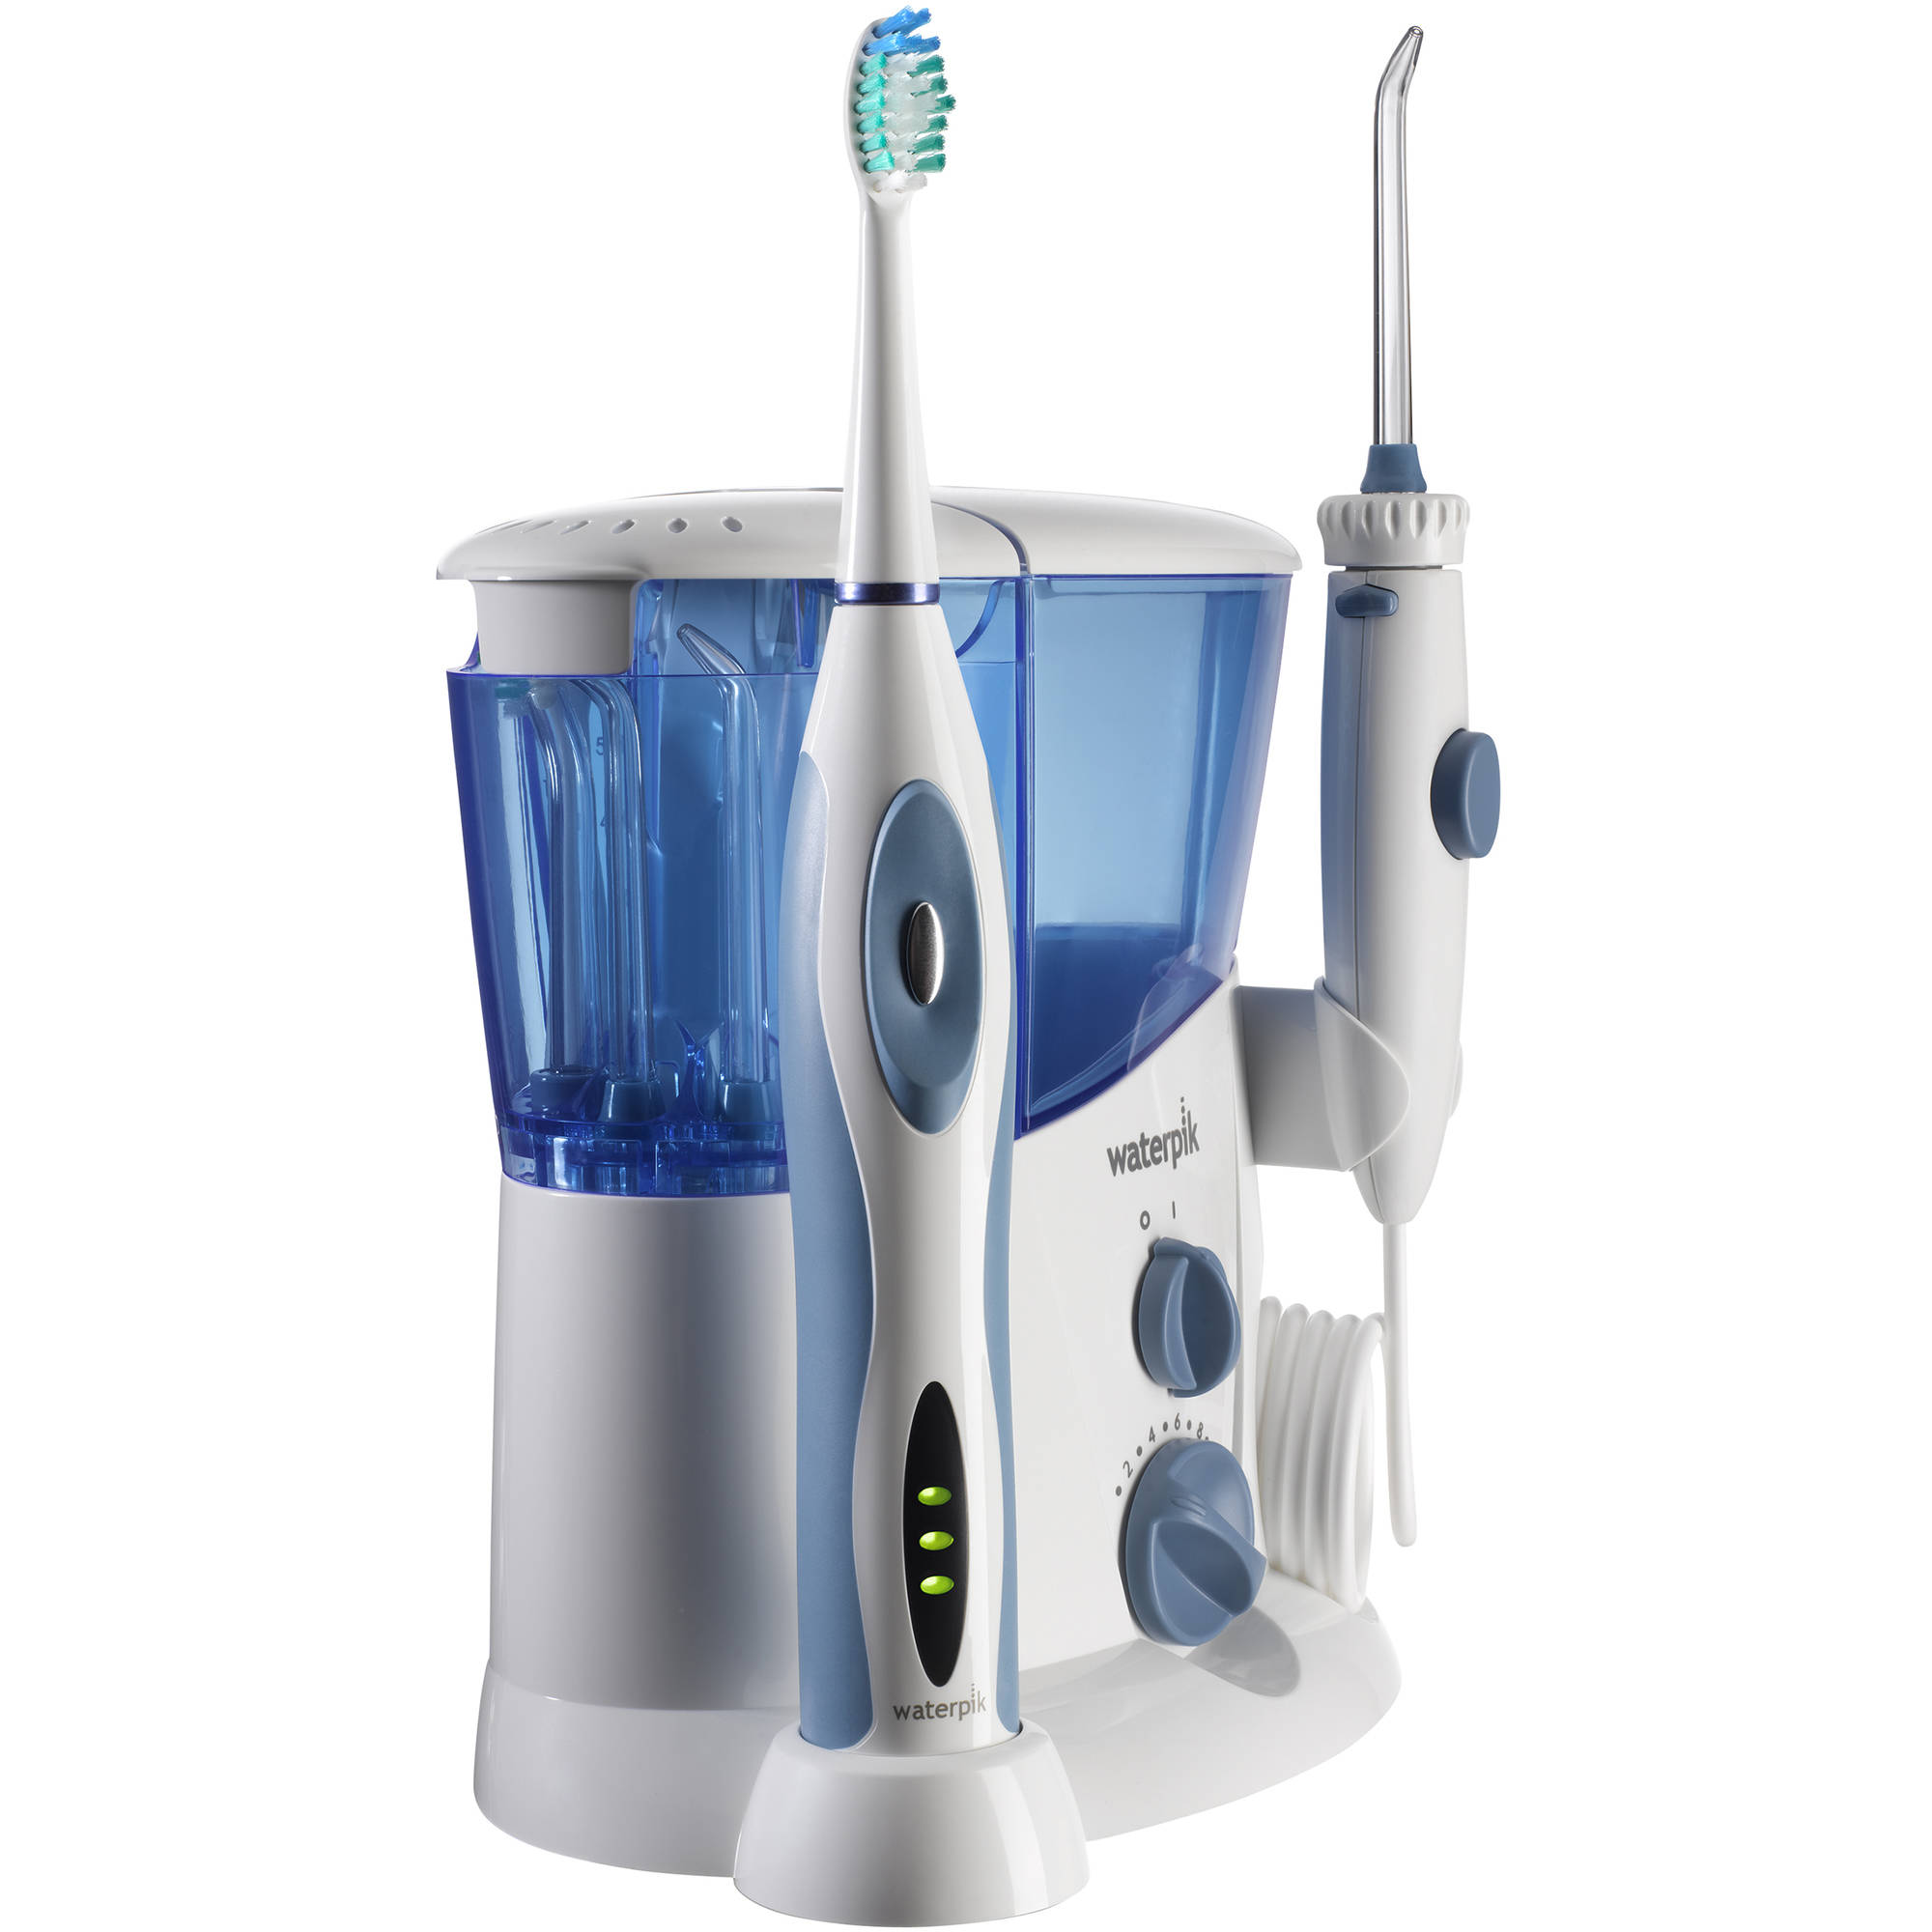 Waterpik Complete Care Water Flosser + Sonic Toothbrush